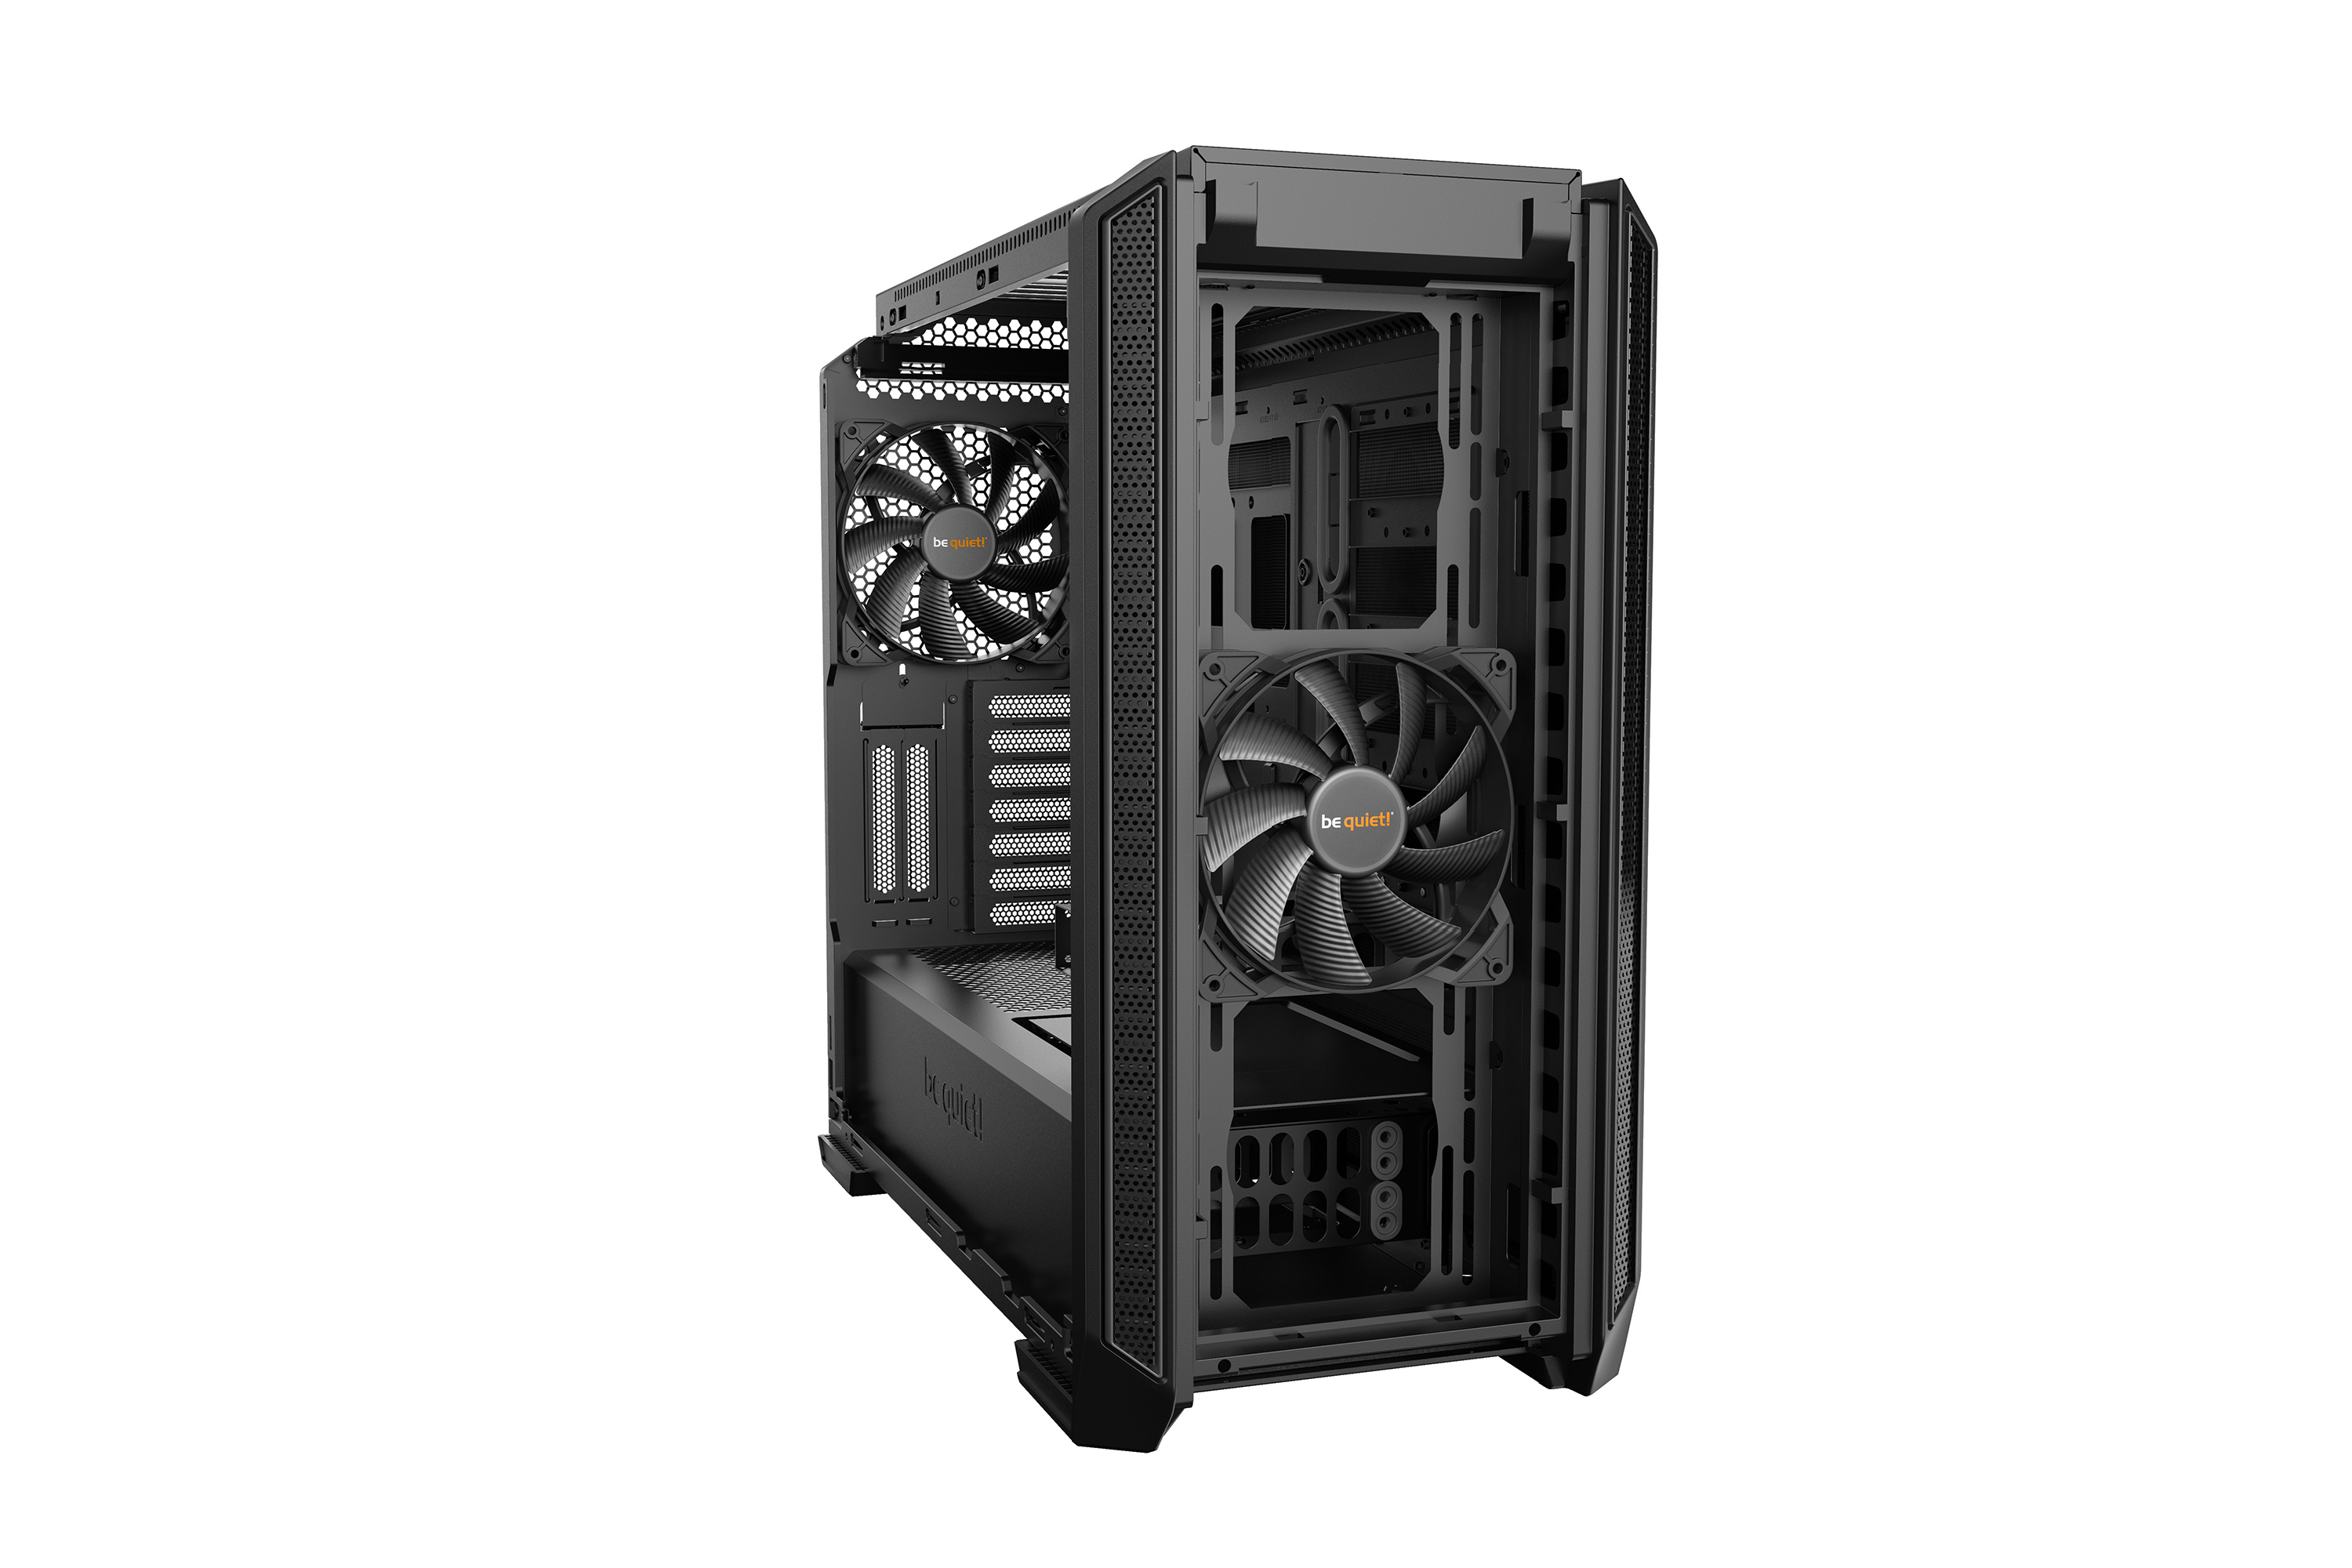 be quiet! Silent Base 601 Black, 532 x 230 x 513, IO-panel 2x USB 3.0, 1x USB 2.0, HD Audio, 3 (7) x 3,5, 6 (14) x 2,5, inc 2x 140 mm Pure Wings 2, dual air channel cooling, 3-in-1 airintake sidepanel